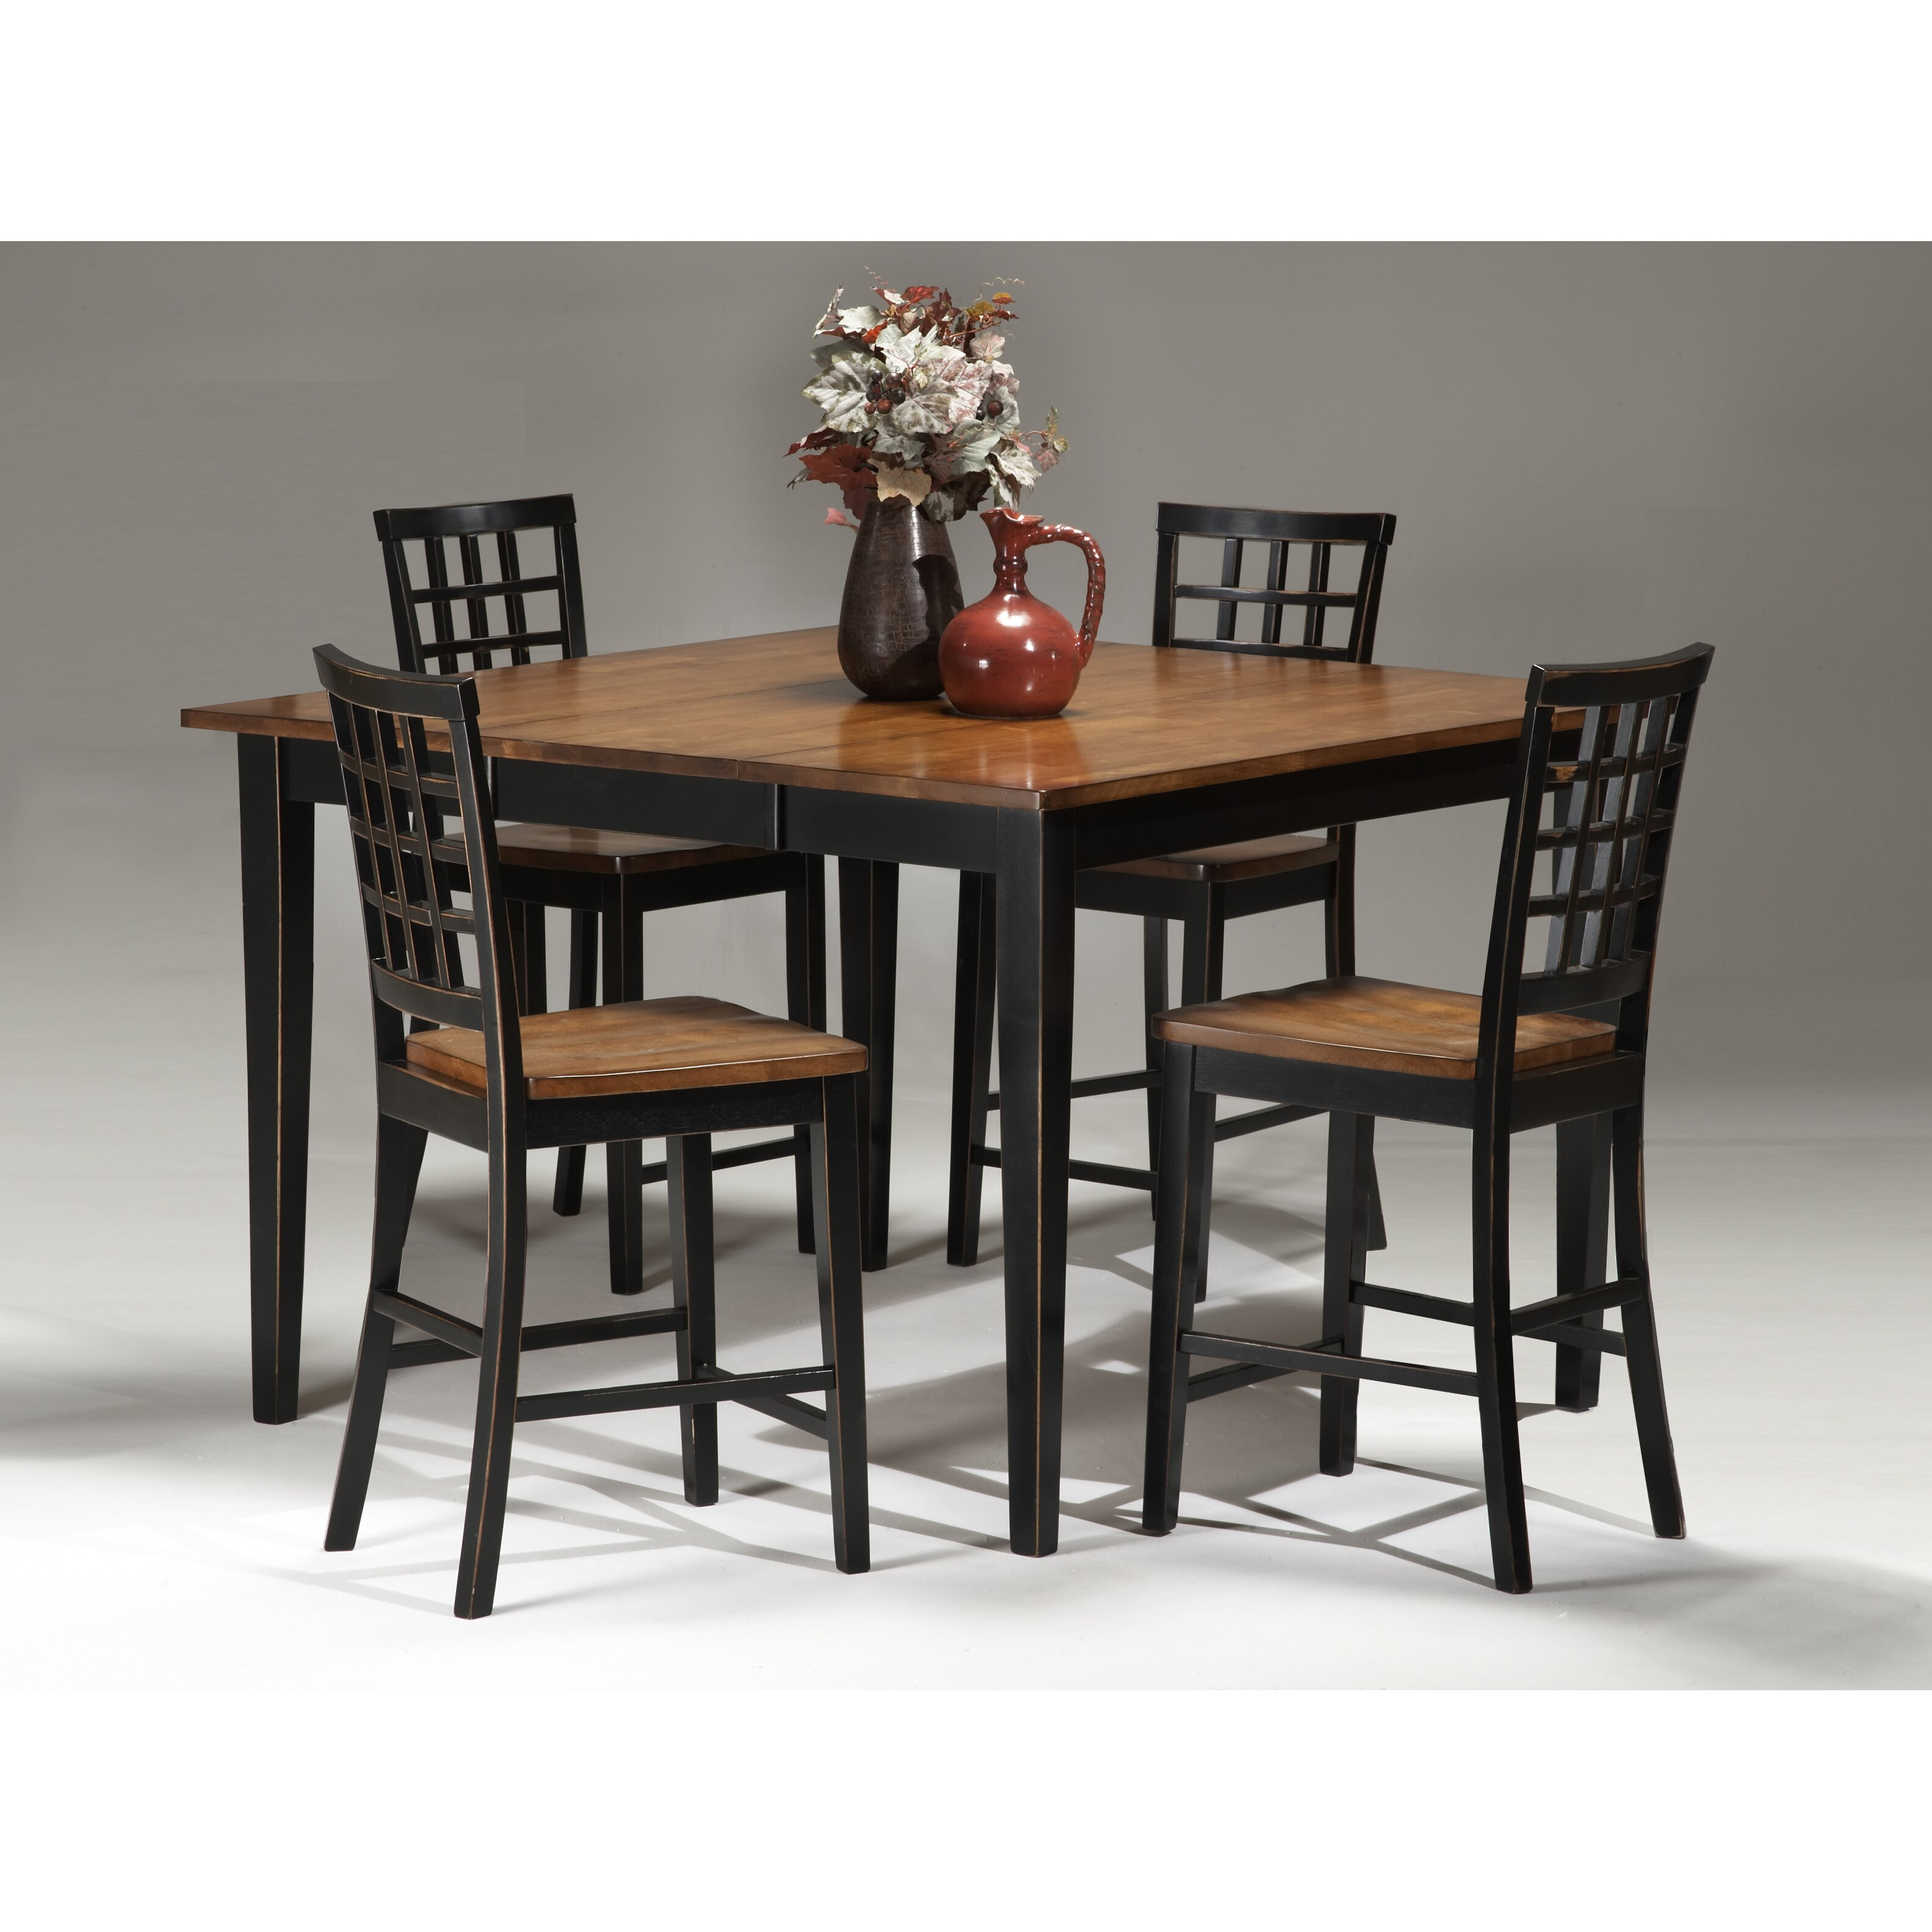 Imagio Home by Intercon Arlington Counter Height Gathering Table